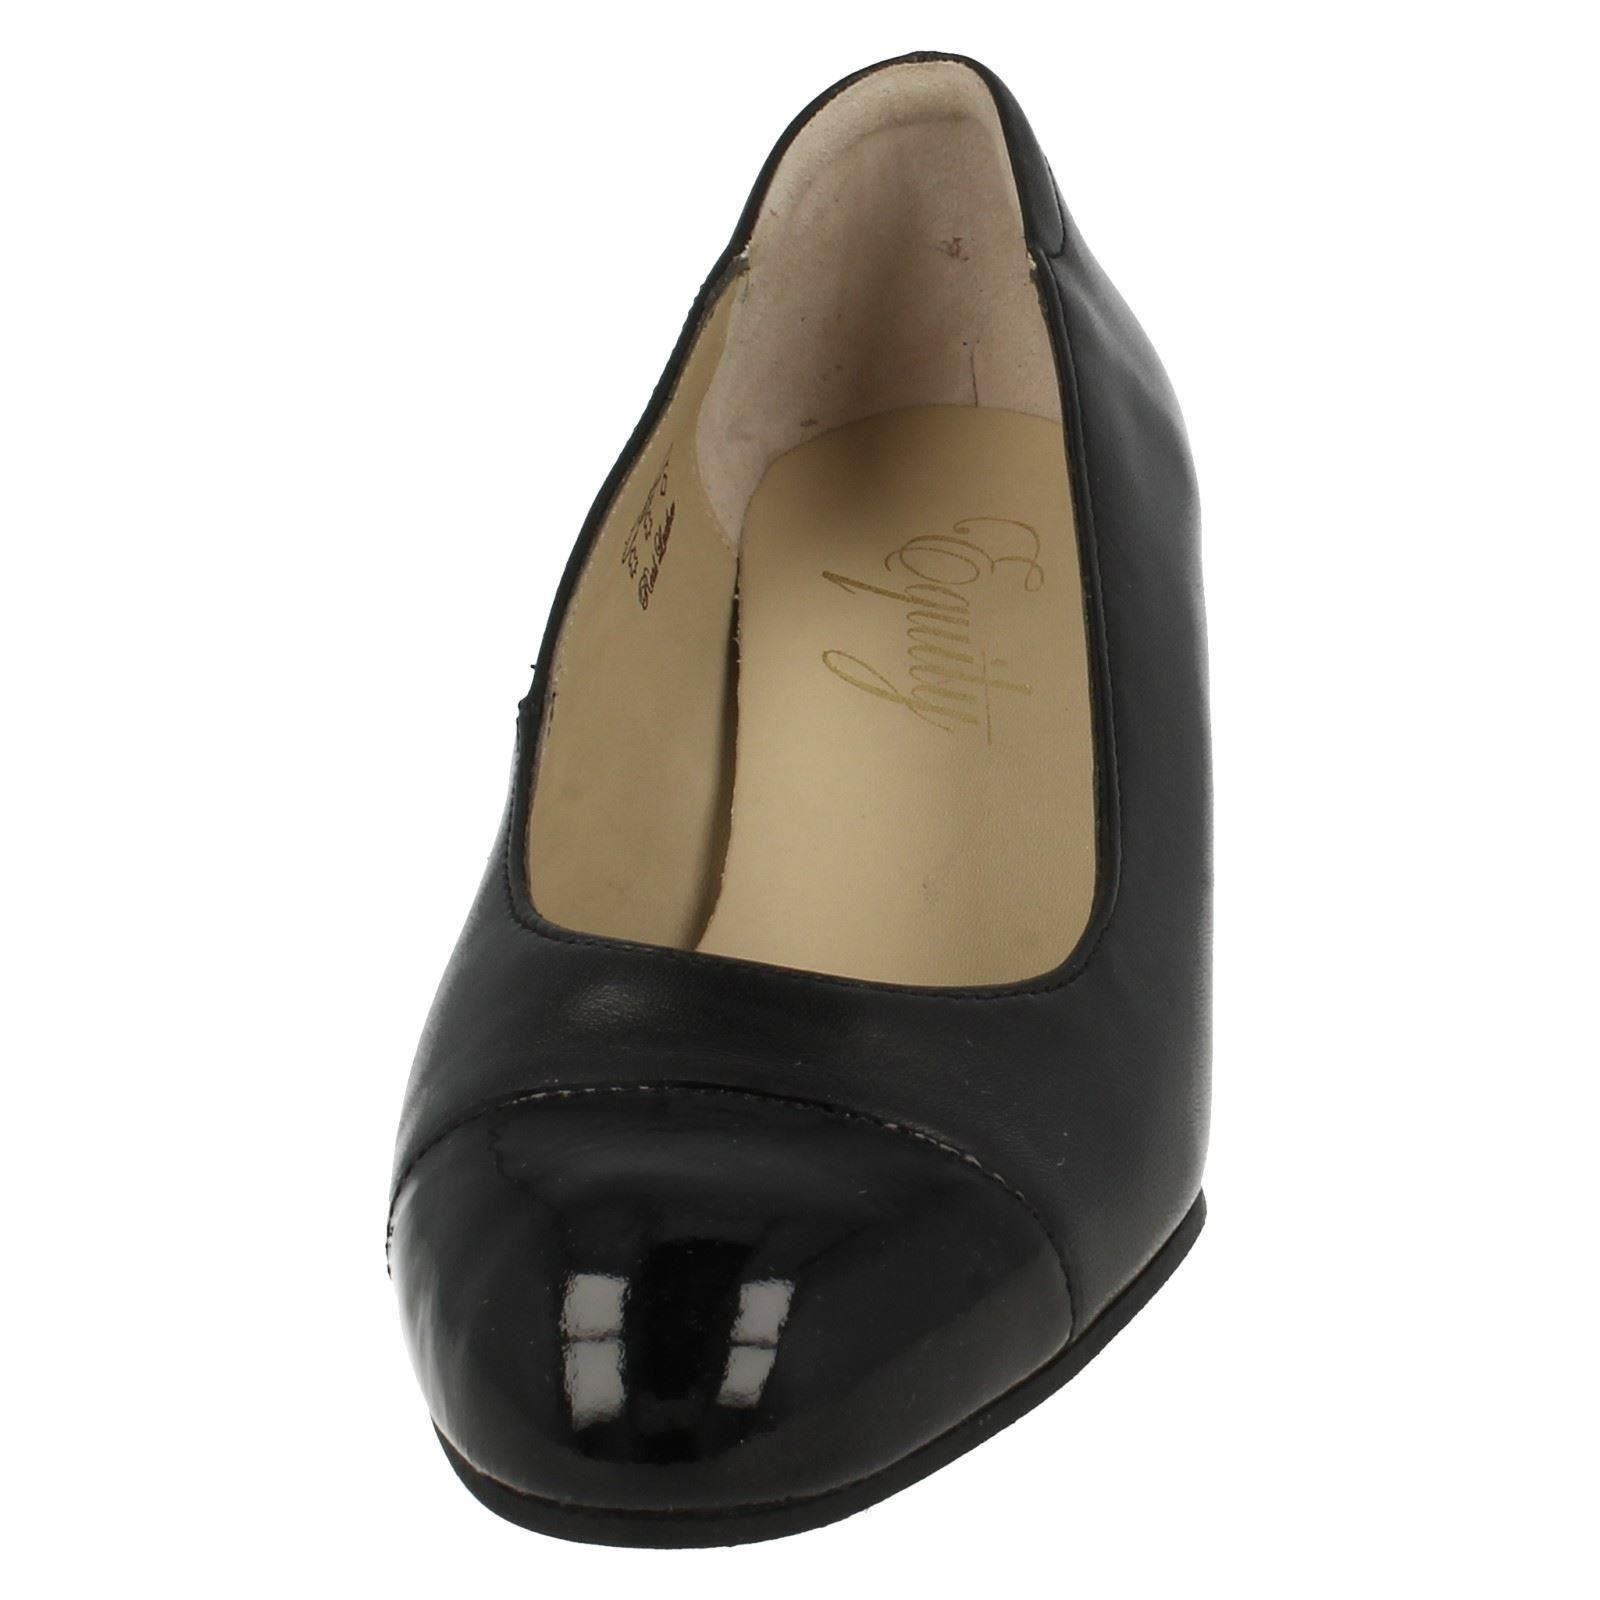 Gentlemen/Ladies Ladies Equity Wide Shoes Fitting Court Shoes Wide Camilla Fine processing Let our products go to the world Cost-effective GB996 f0ddd9